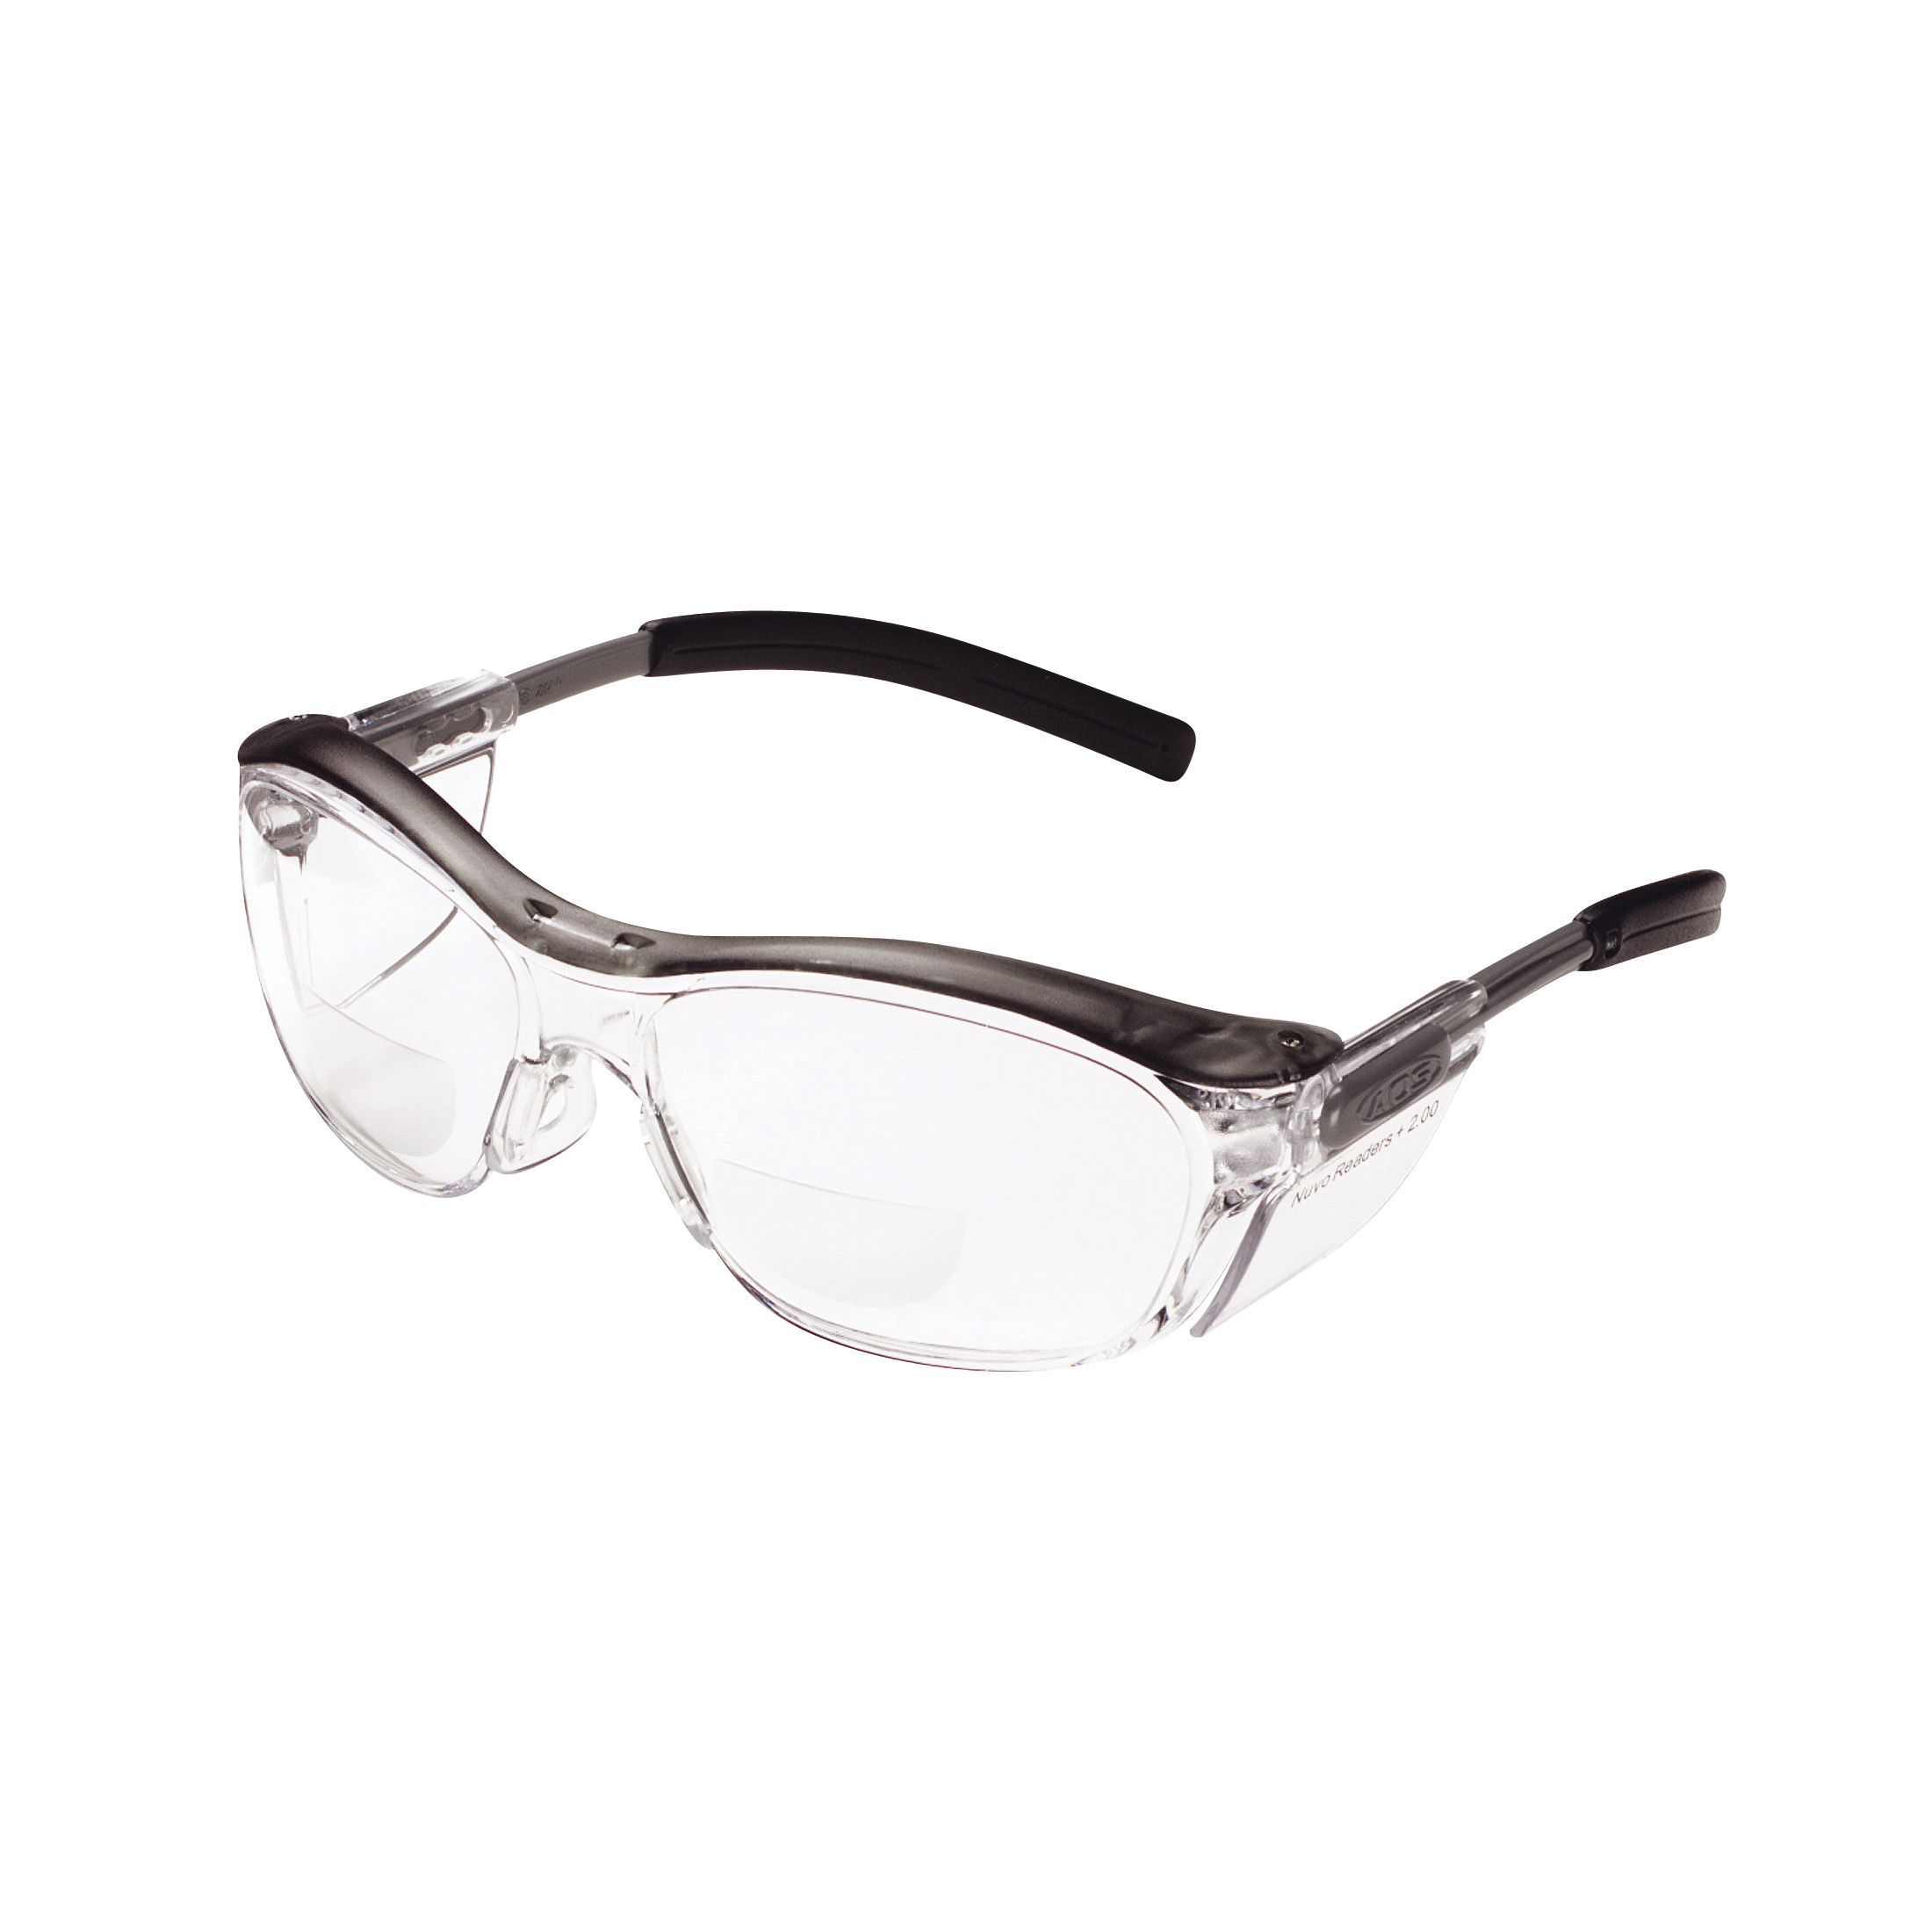 3M™ Nuvo™ 078371-62063 11435-00000-20 Bi-Focal Lens Lightweight Reader Protective Eyewear, 2 Diopter, Clear Lens, Gray Plastic Frame, Polycarbonate Lens, 99.9% UV Protection, Specifications Met: ANSI Z87.1-2015, CSA Z94.3-2007